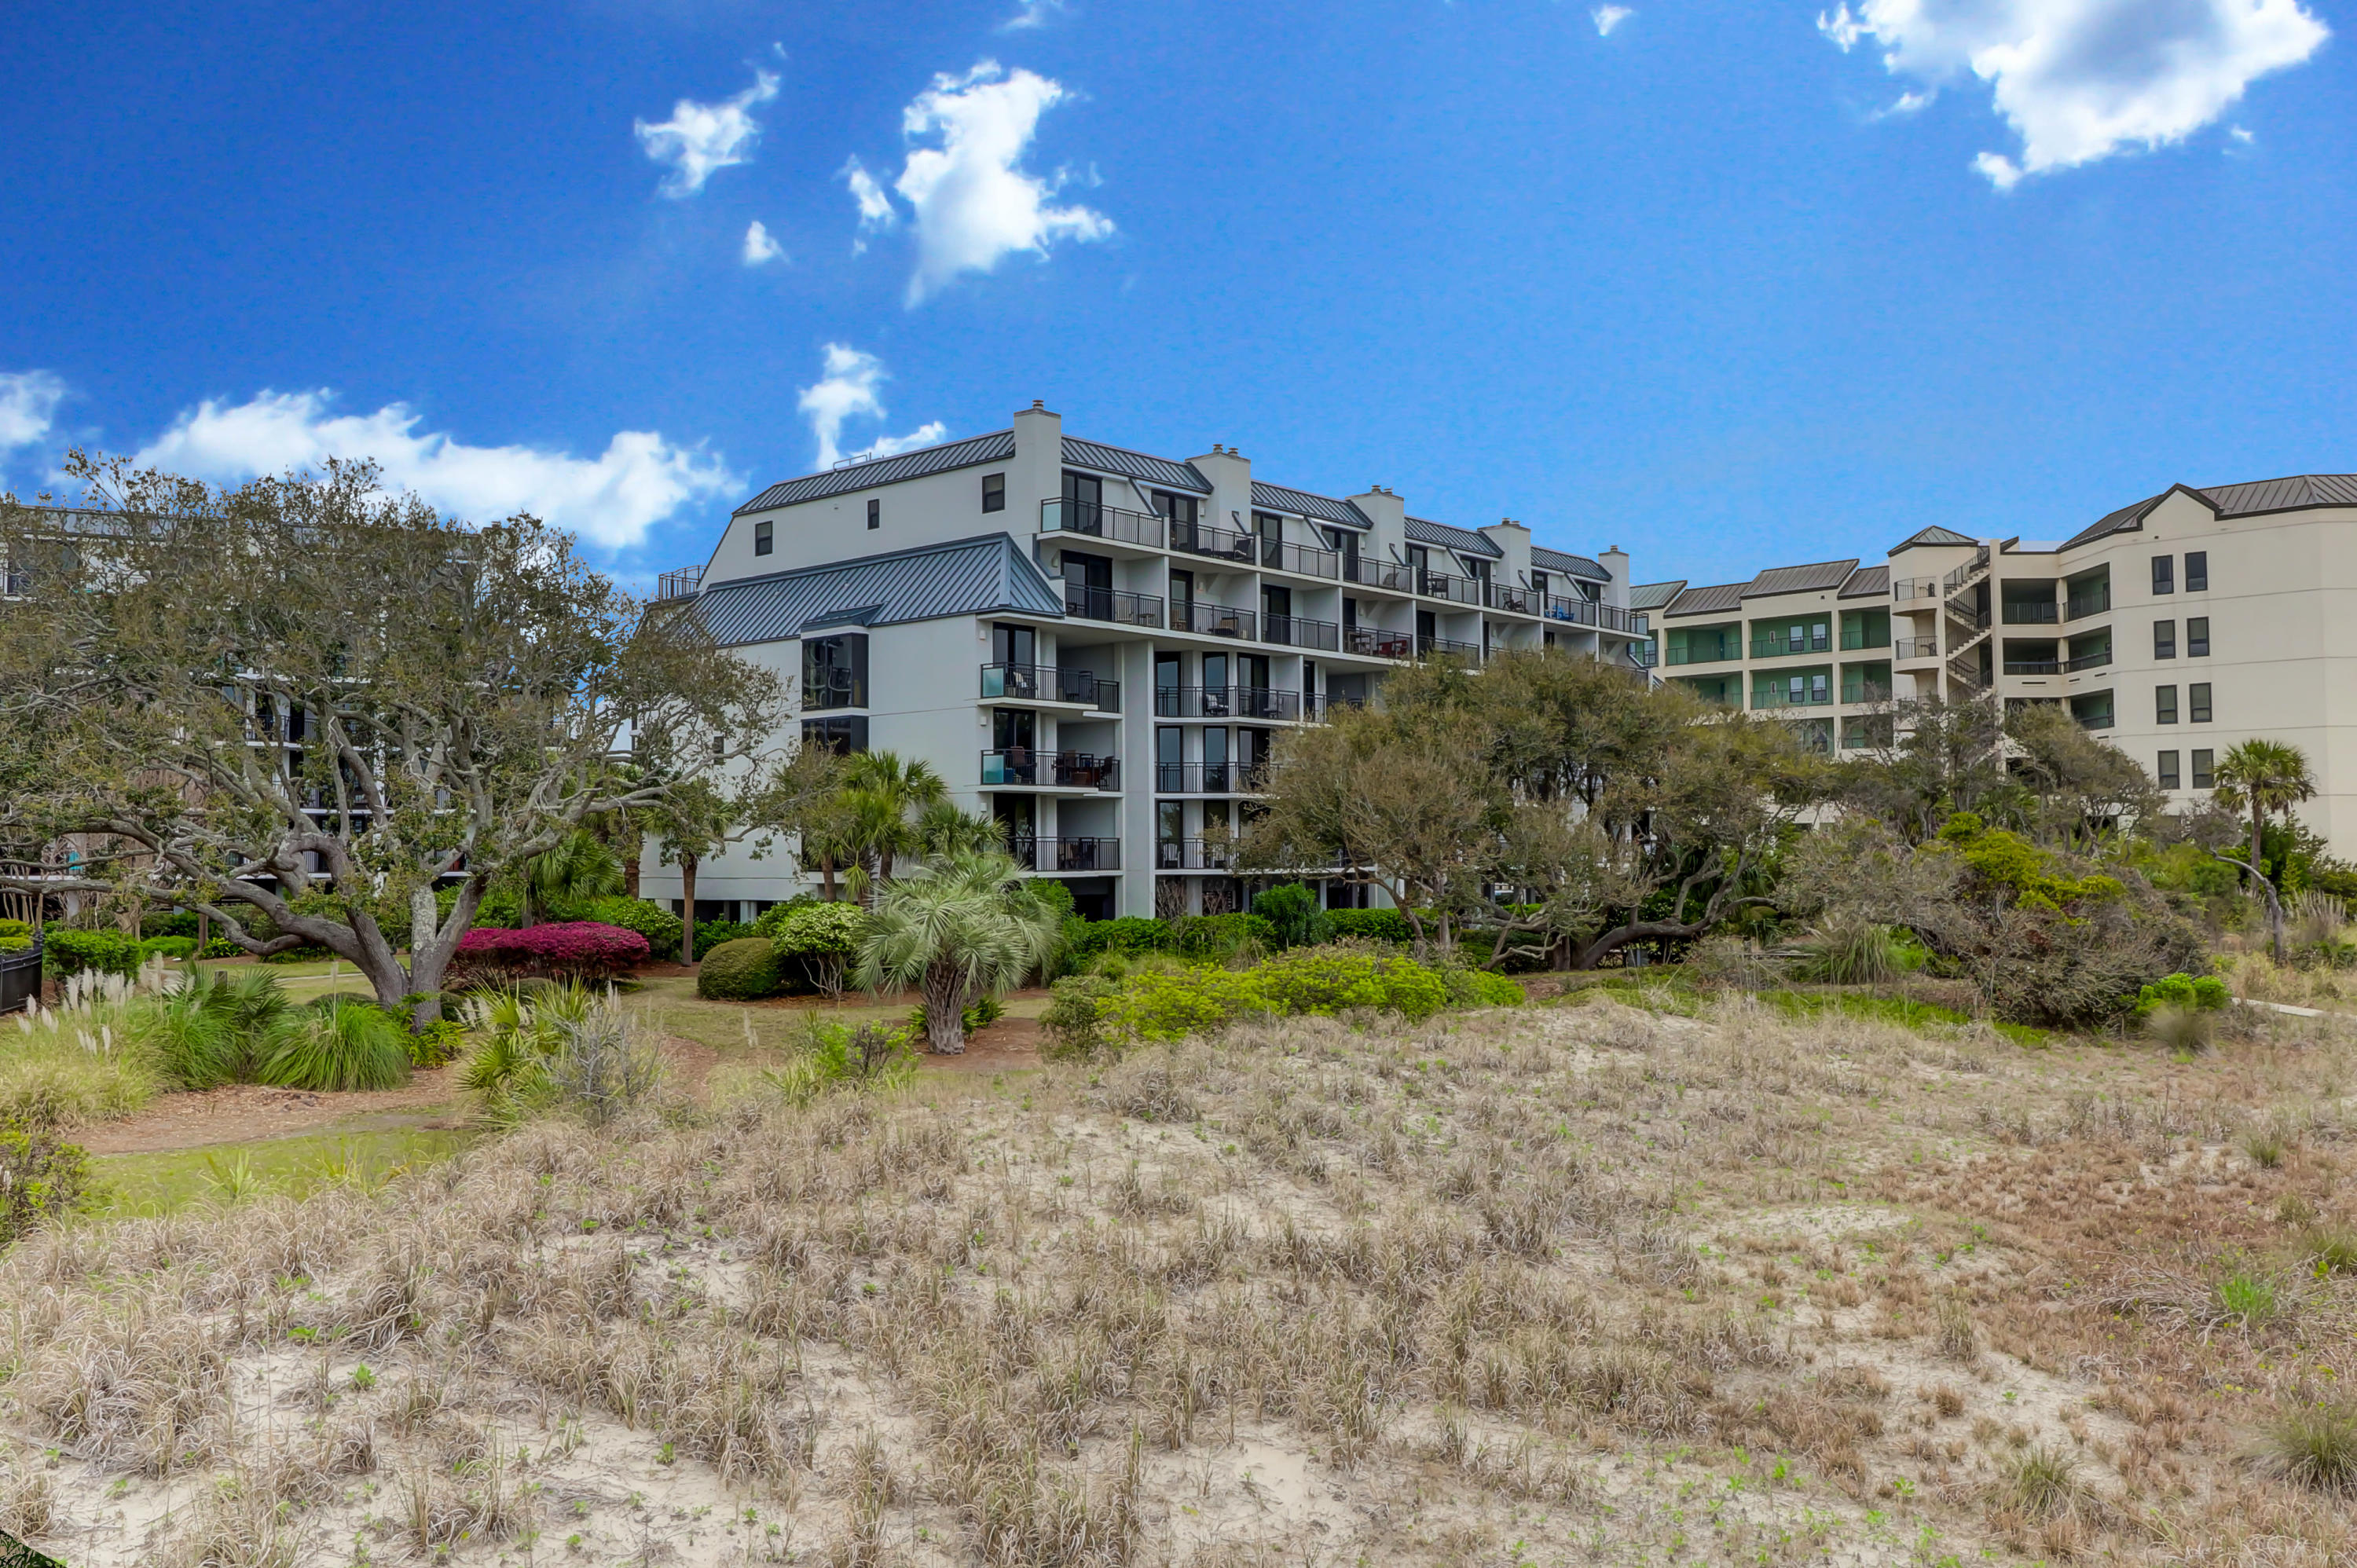 427 D Shipwatch Villa Share 1 Isle Of Palms, SC 29451